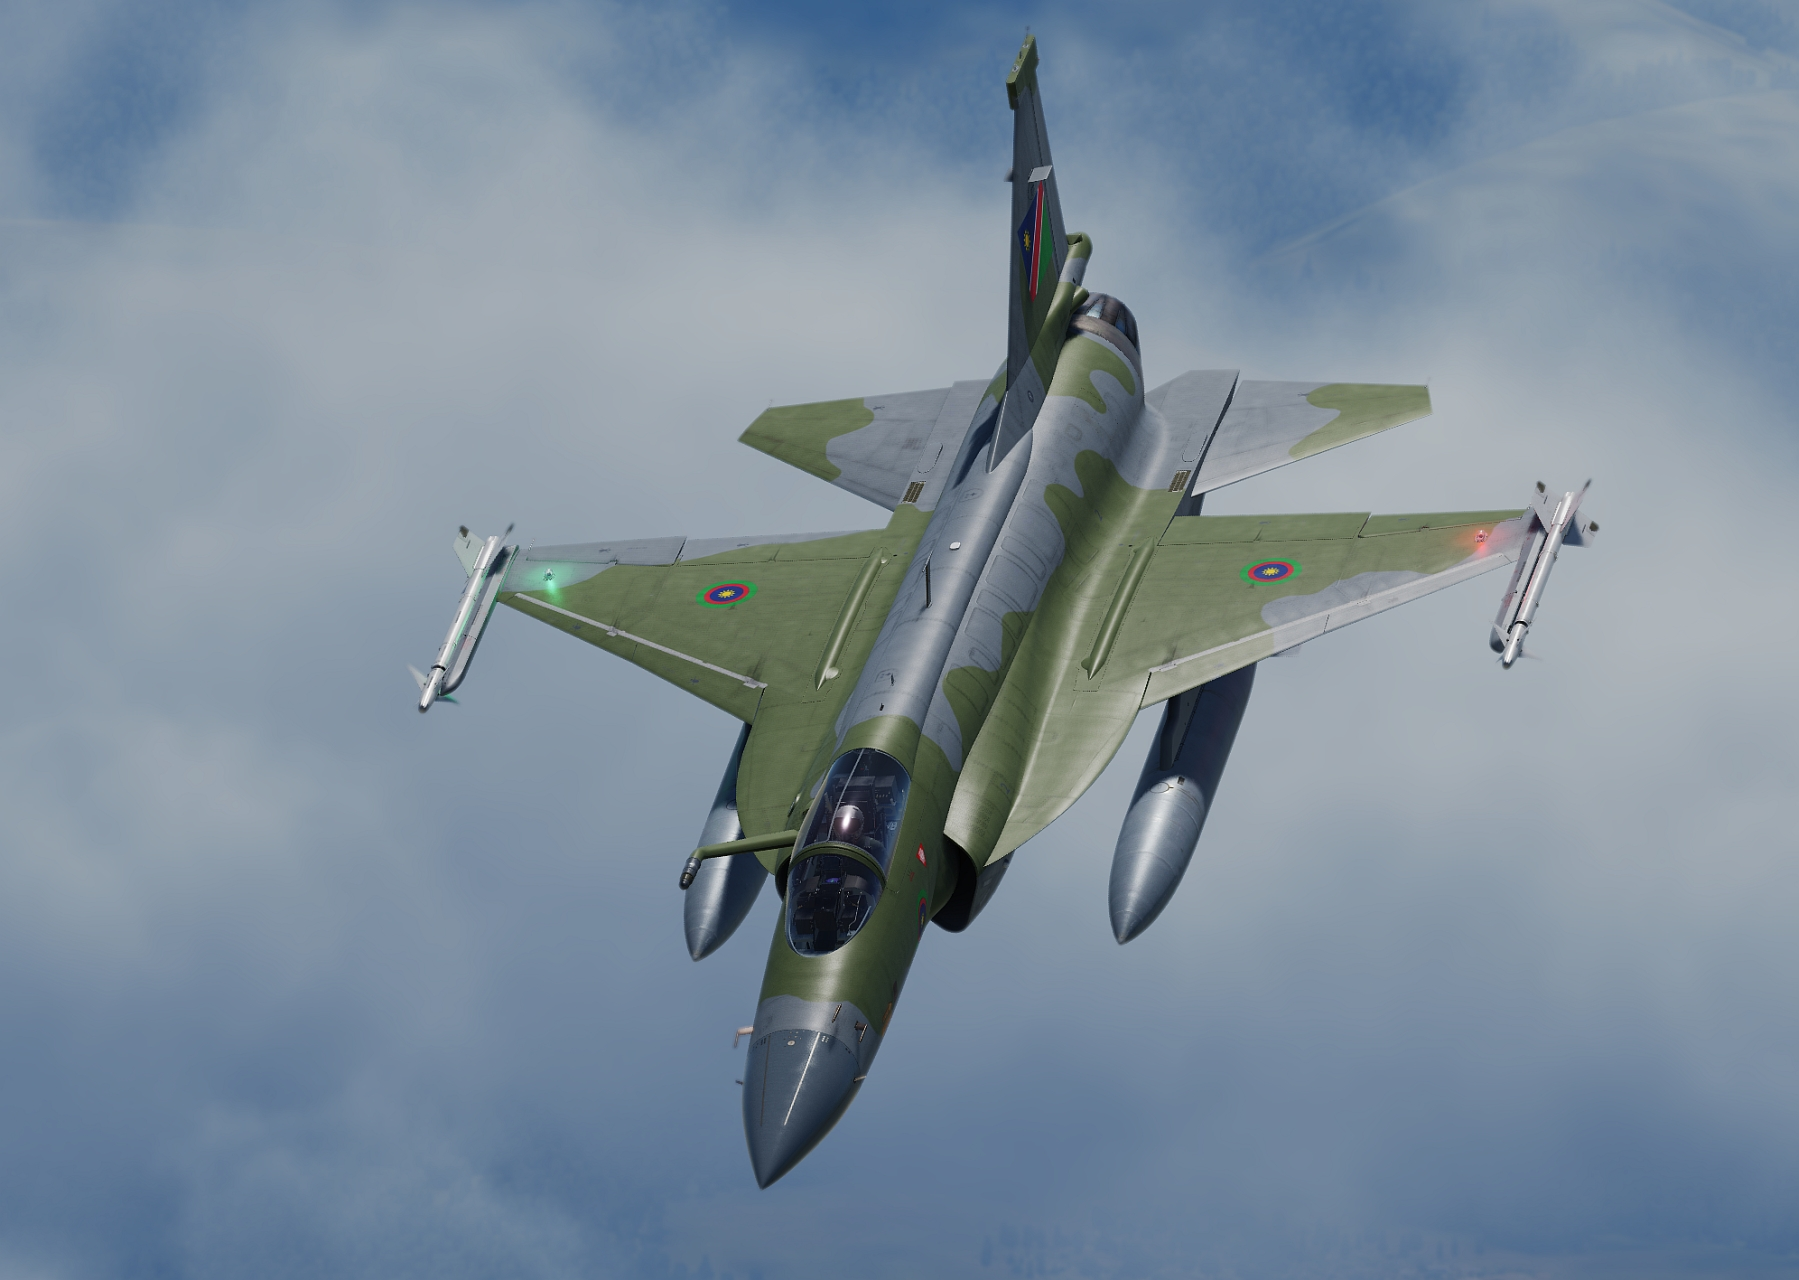 Namibian Air Force JF-17 (Fictional)